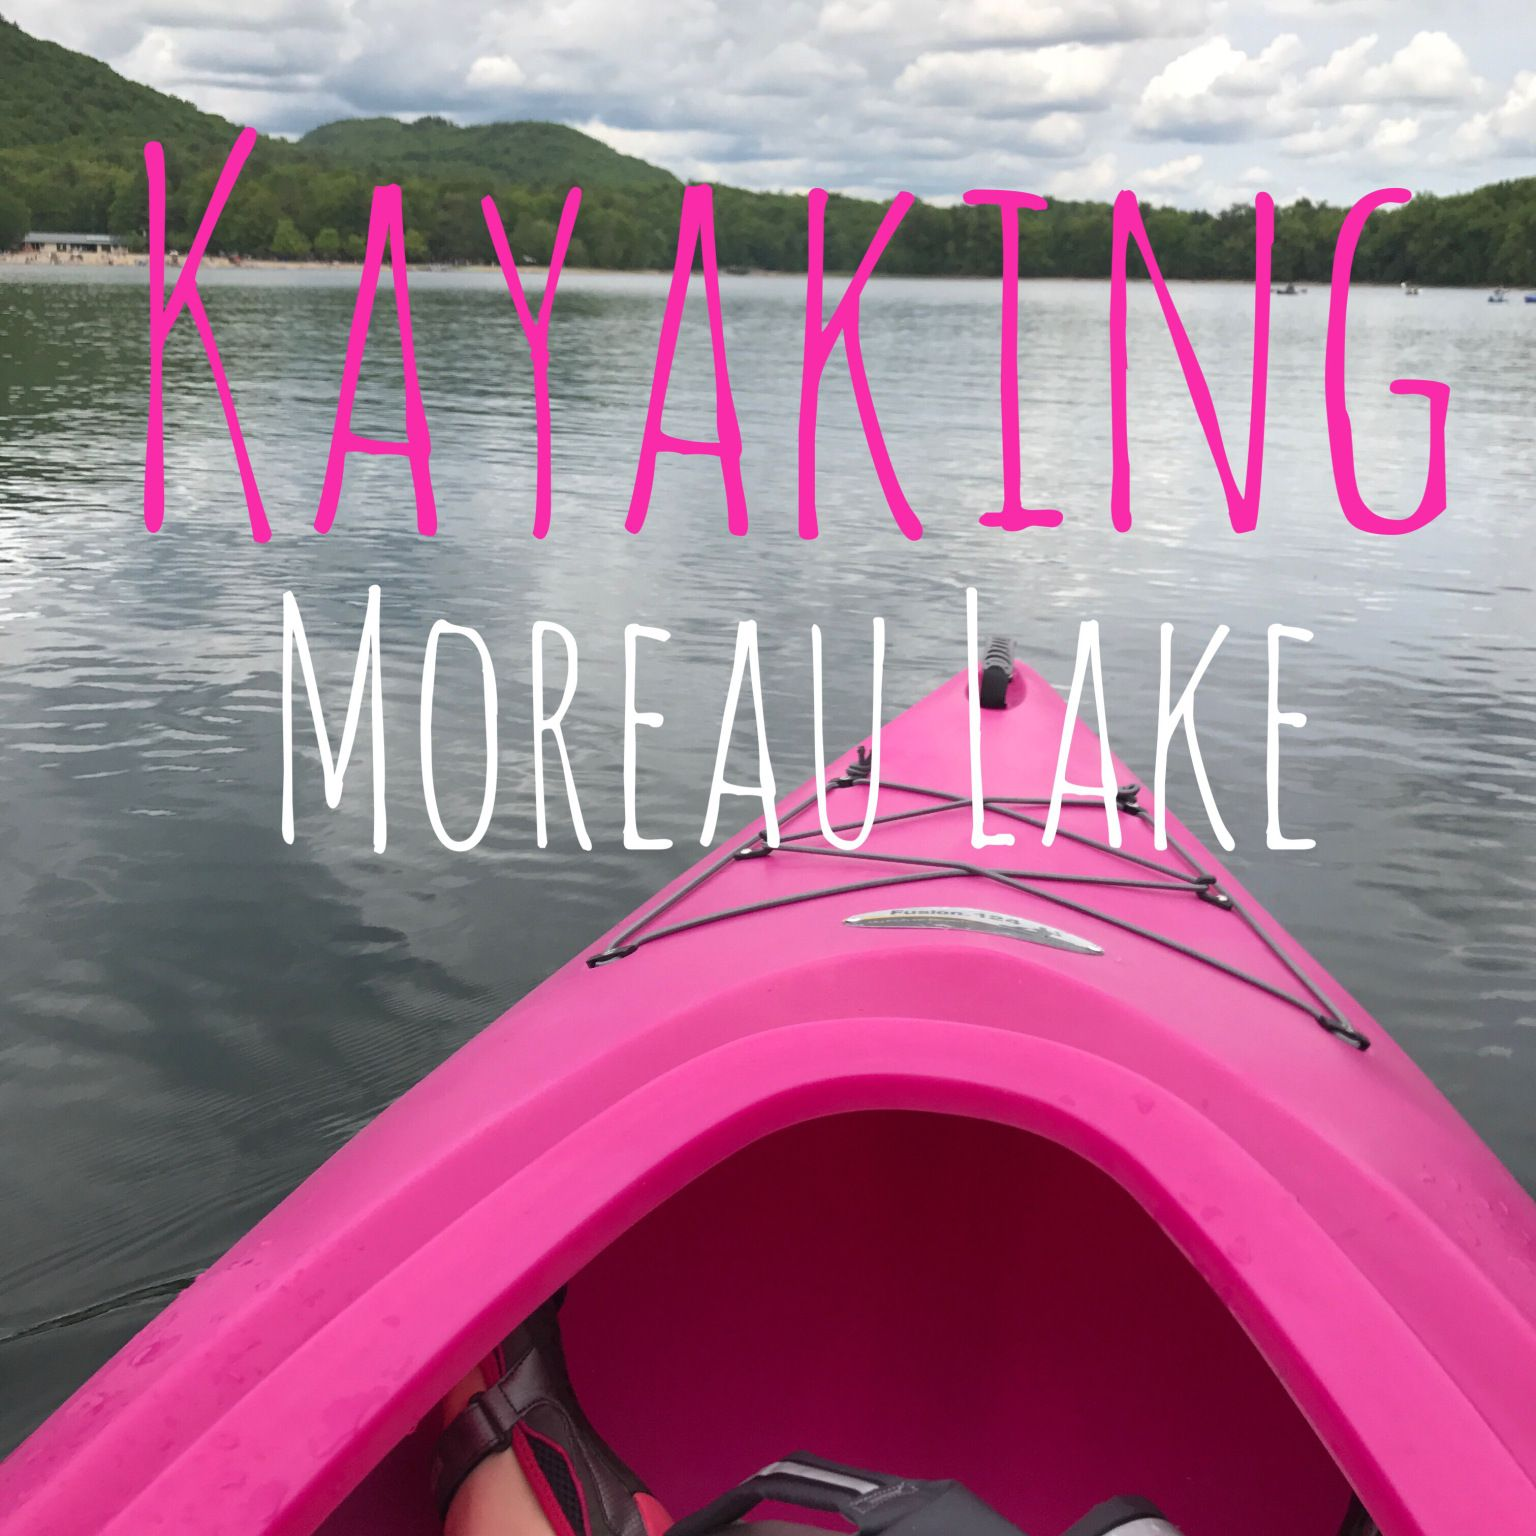 Well my Christmas wish came true! I received a bright pink Kayak! Do of course when Memorial Day Weekend rolled around I was ecstatic to take her out for her maiden voyage.  It was hard to wai…